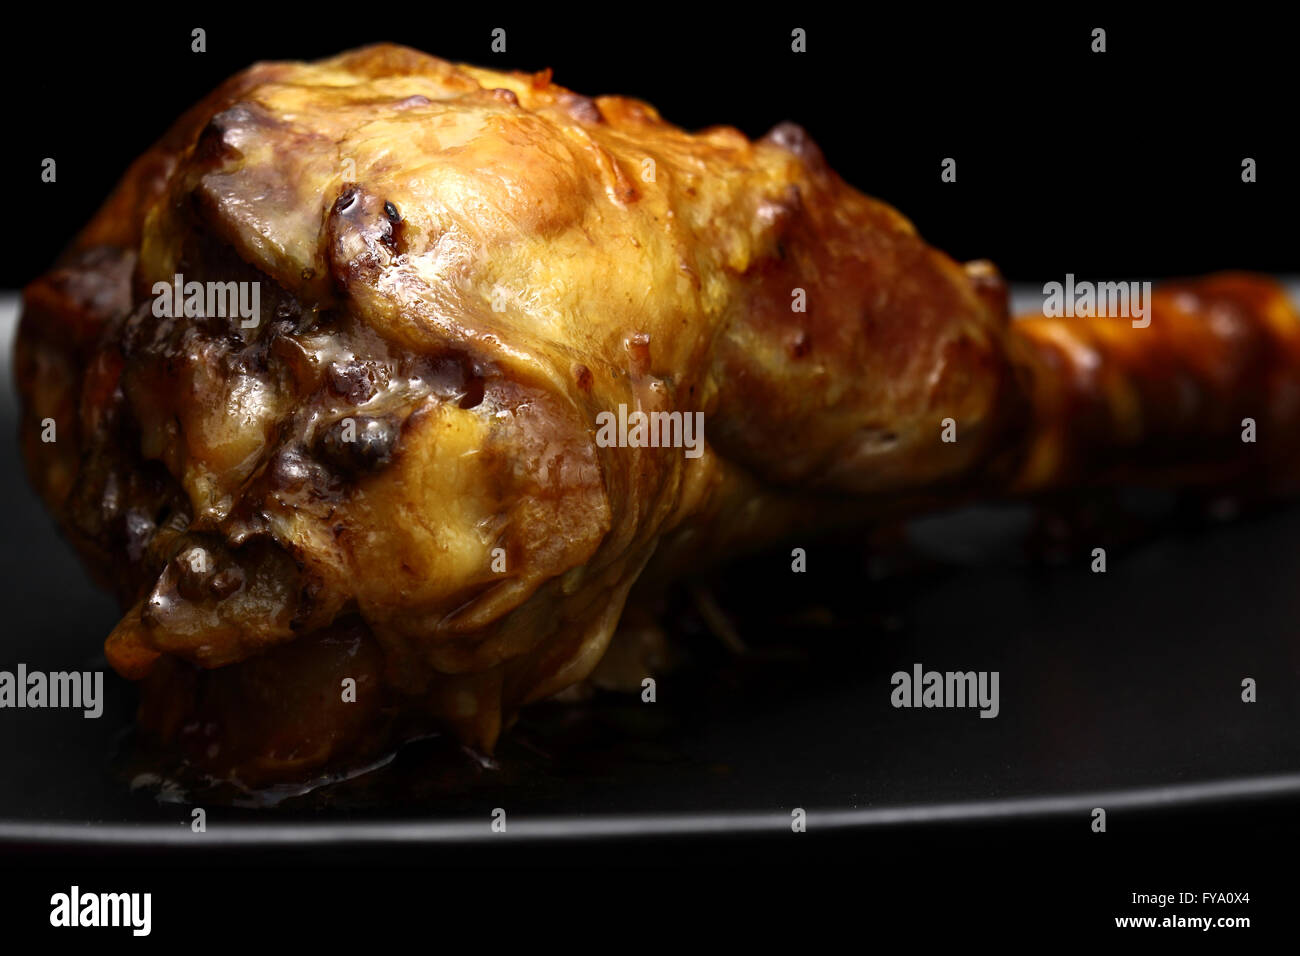 Lamb shank cooked - Stock Image